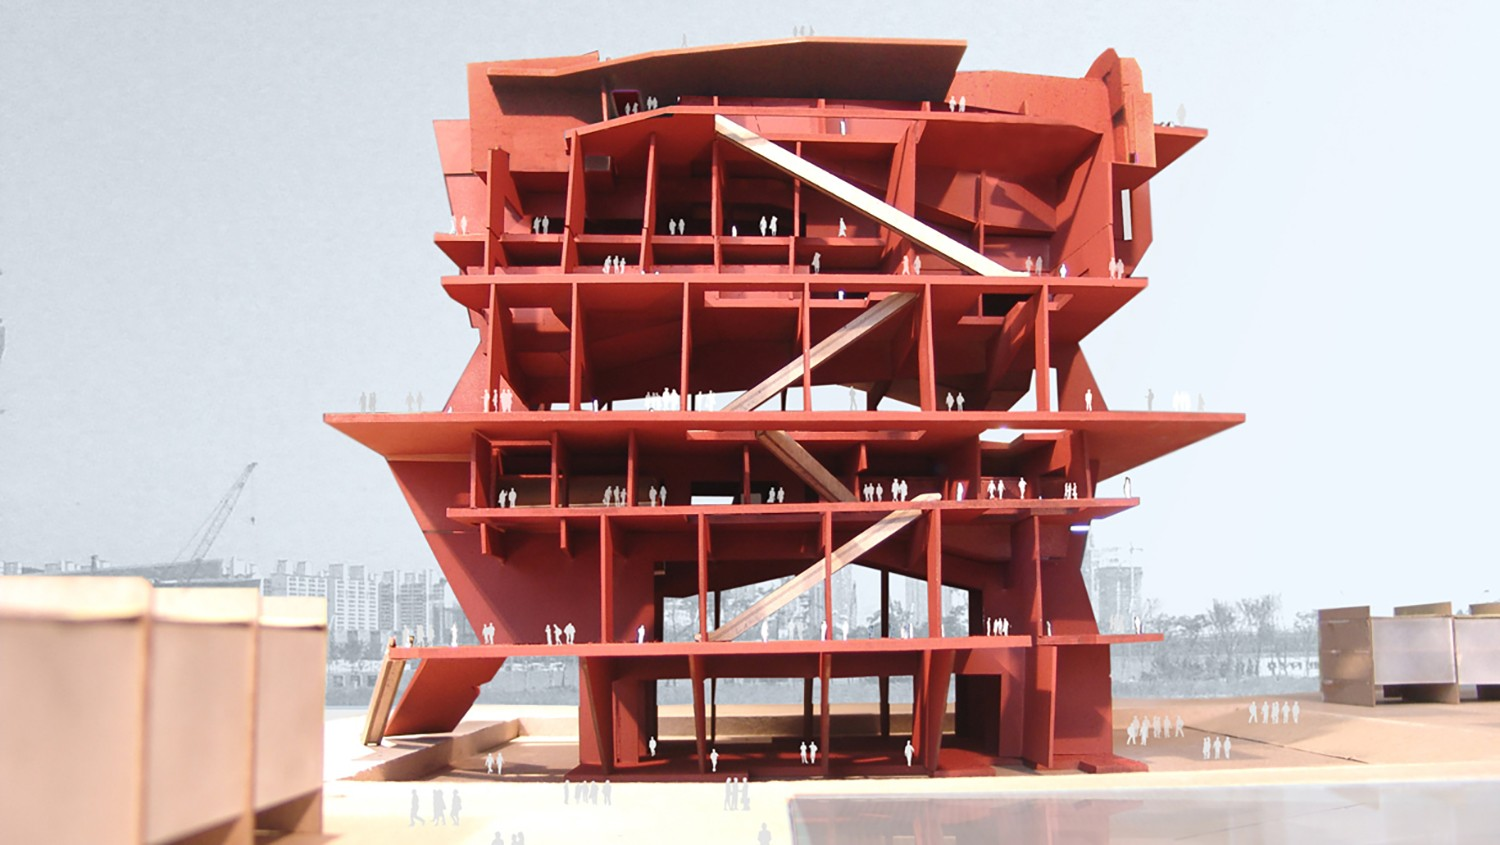 https://s3.us-east-2.amazonaws.com/steven-holl/uploads/projects/project-images/StevenHollArchitects_Busan_CollageofPlaza_WH.jpg